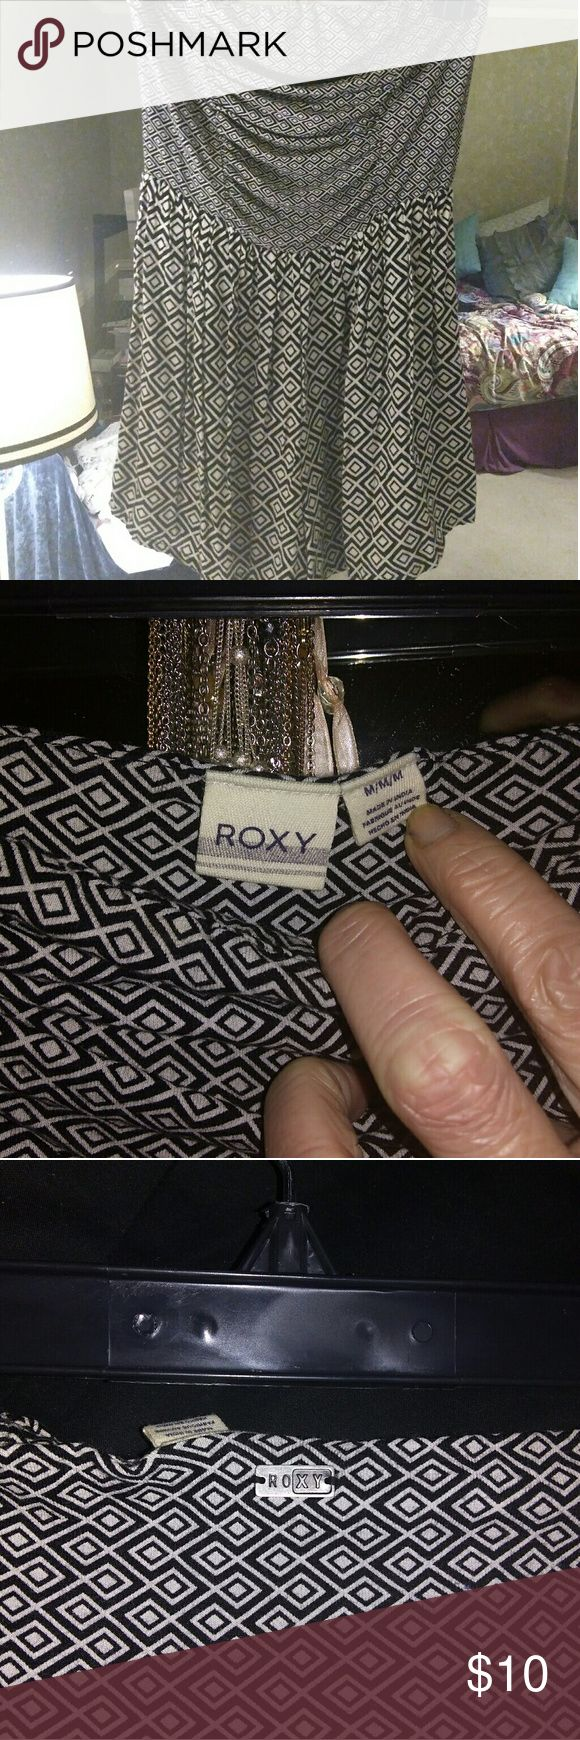 Roxy strapless Romper, sz Medium Roxy black and cream patterned romper. Junior's size medium. It is designed to look like a dress when worn. Super cute. Great condition. Roxy Other